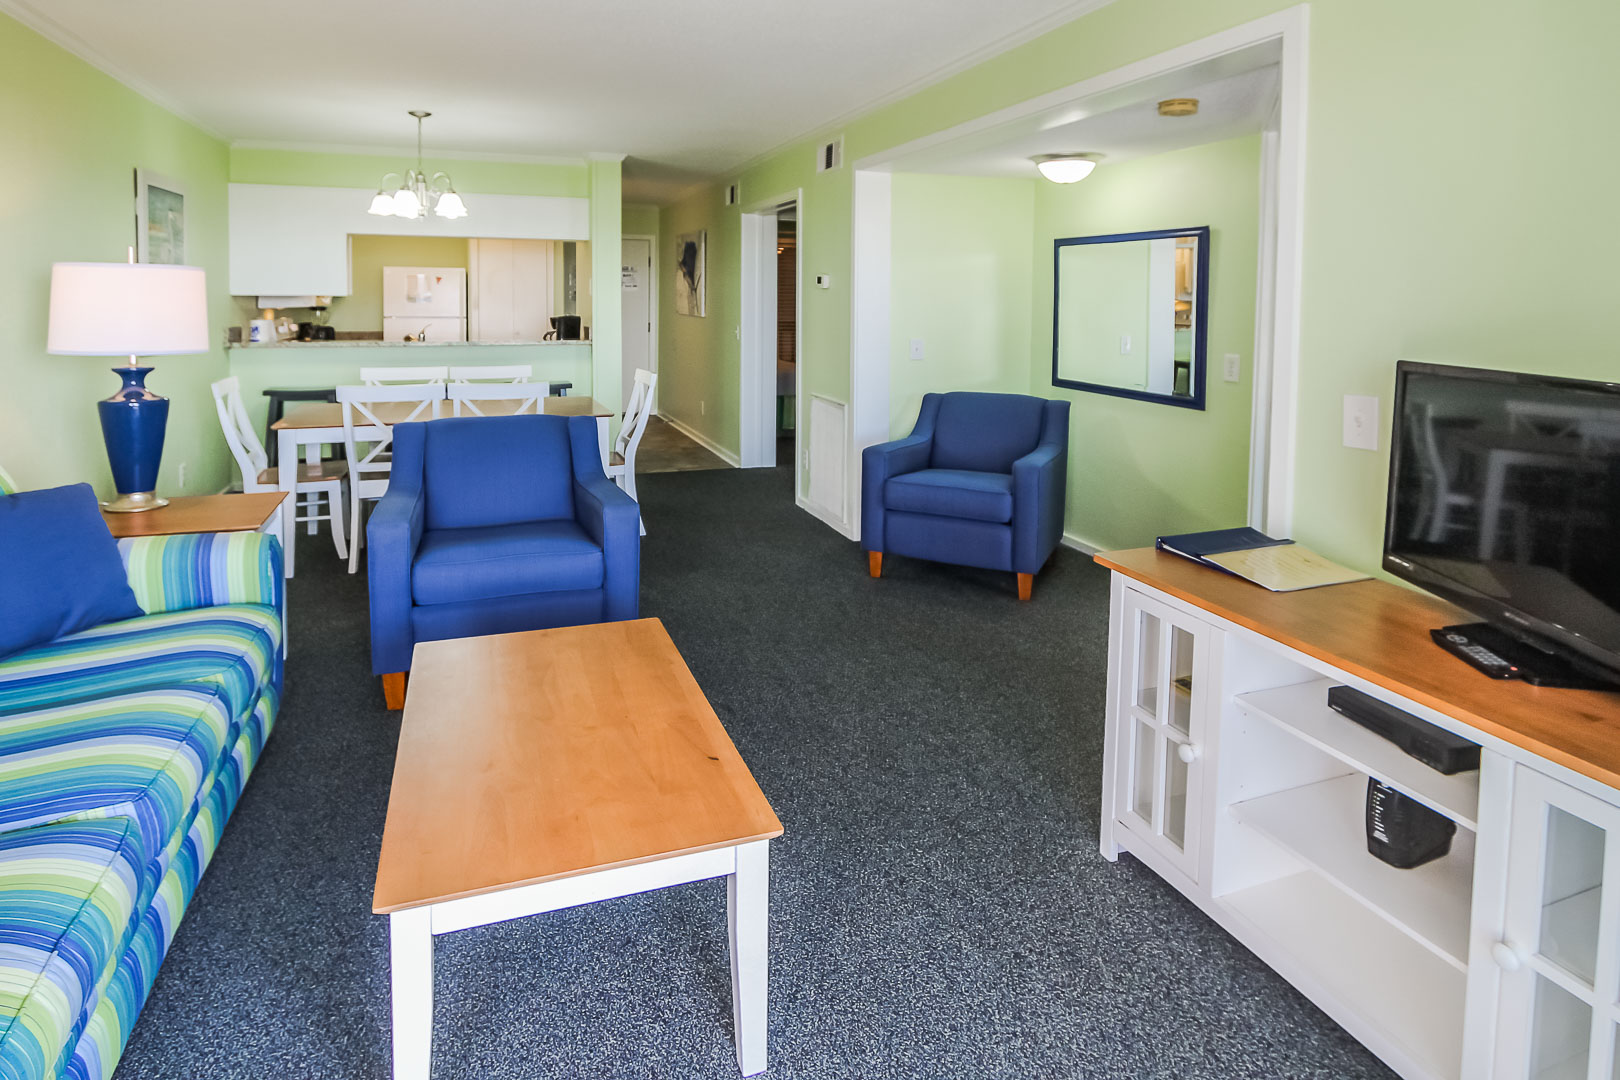 A colorful living room area at VRI's A Place at the Beach III in North Carolina